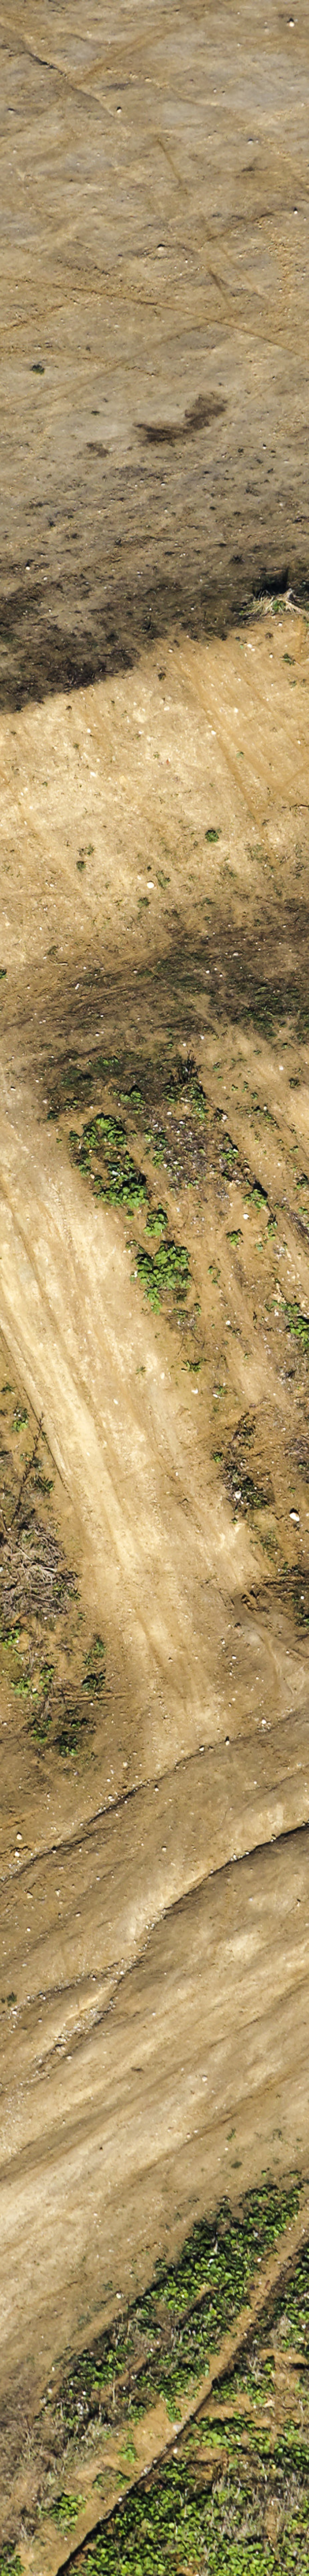 Aerial view of a motocross track on the hill at the end of the A94 motorway near Pastetten-Fendsbach - Klaus Leidorf Aerial Photography